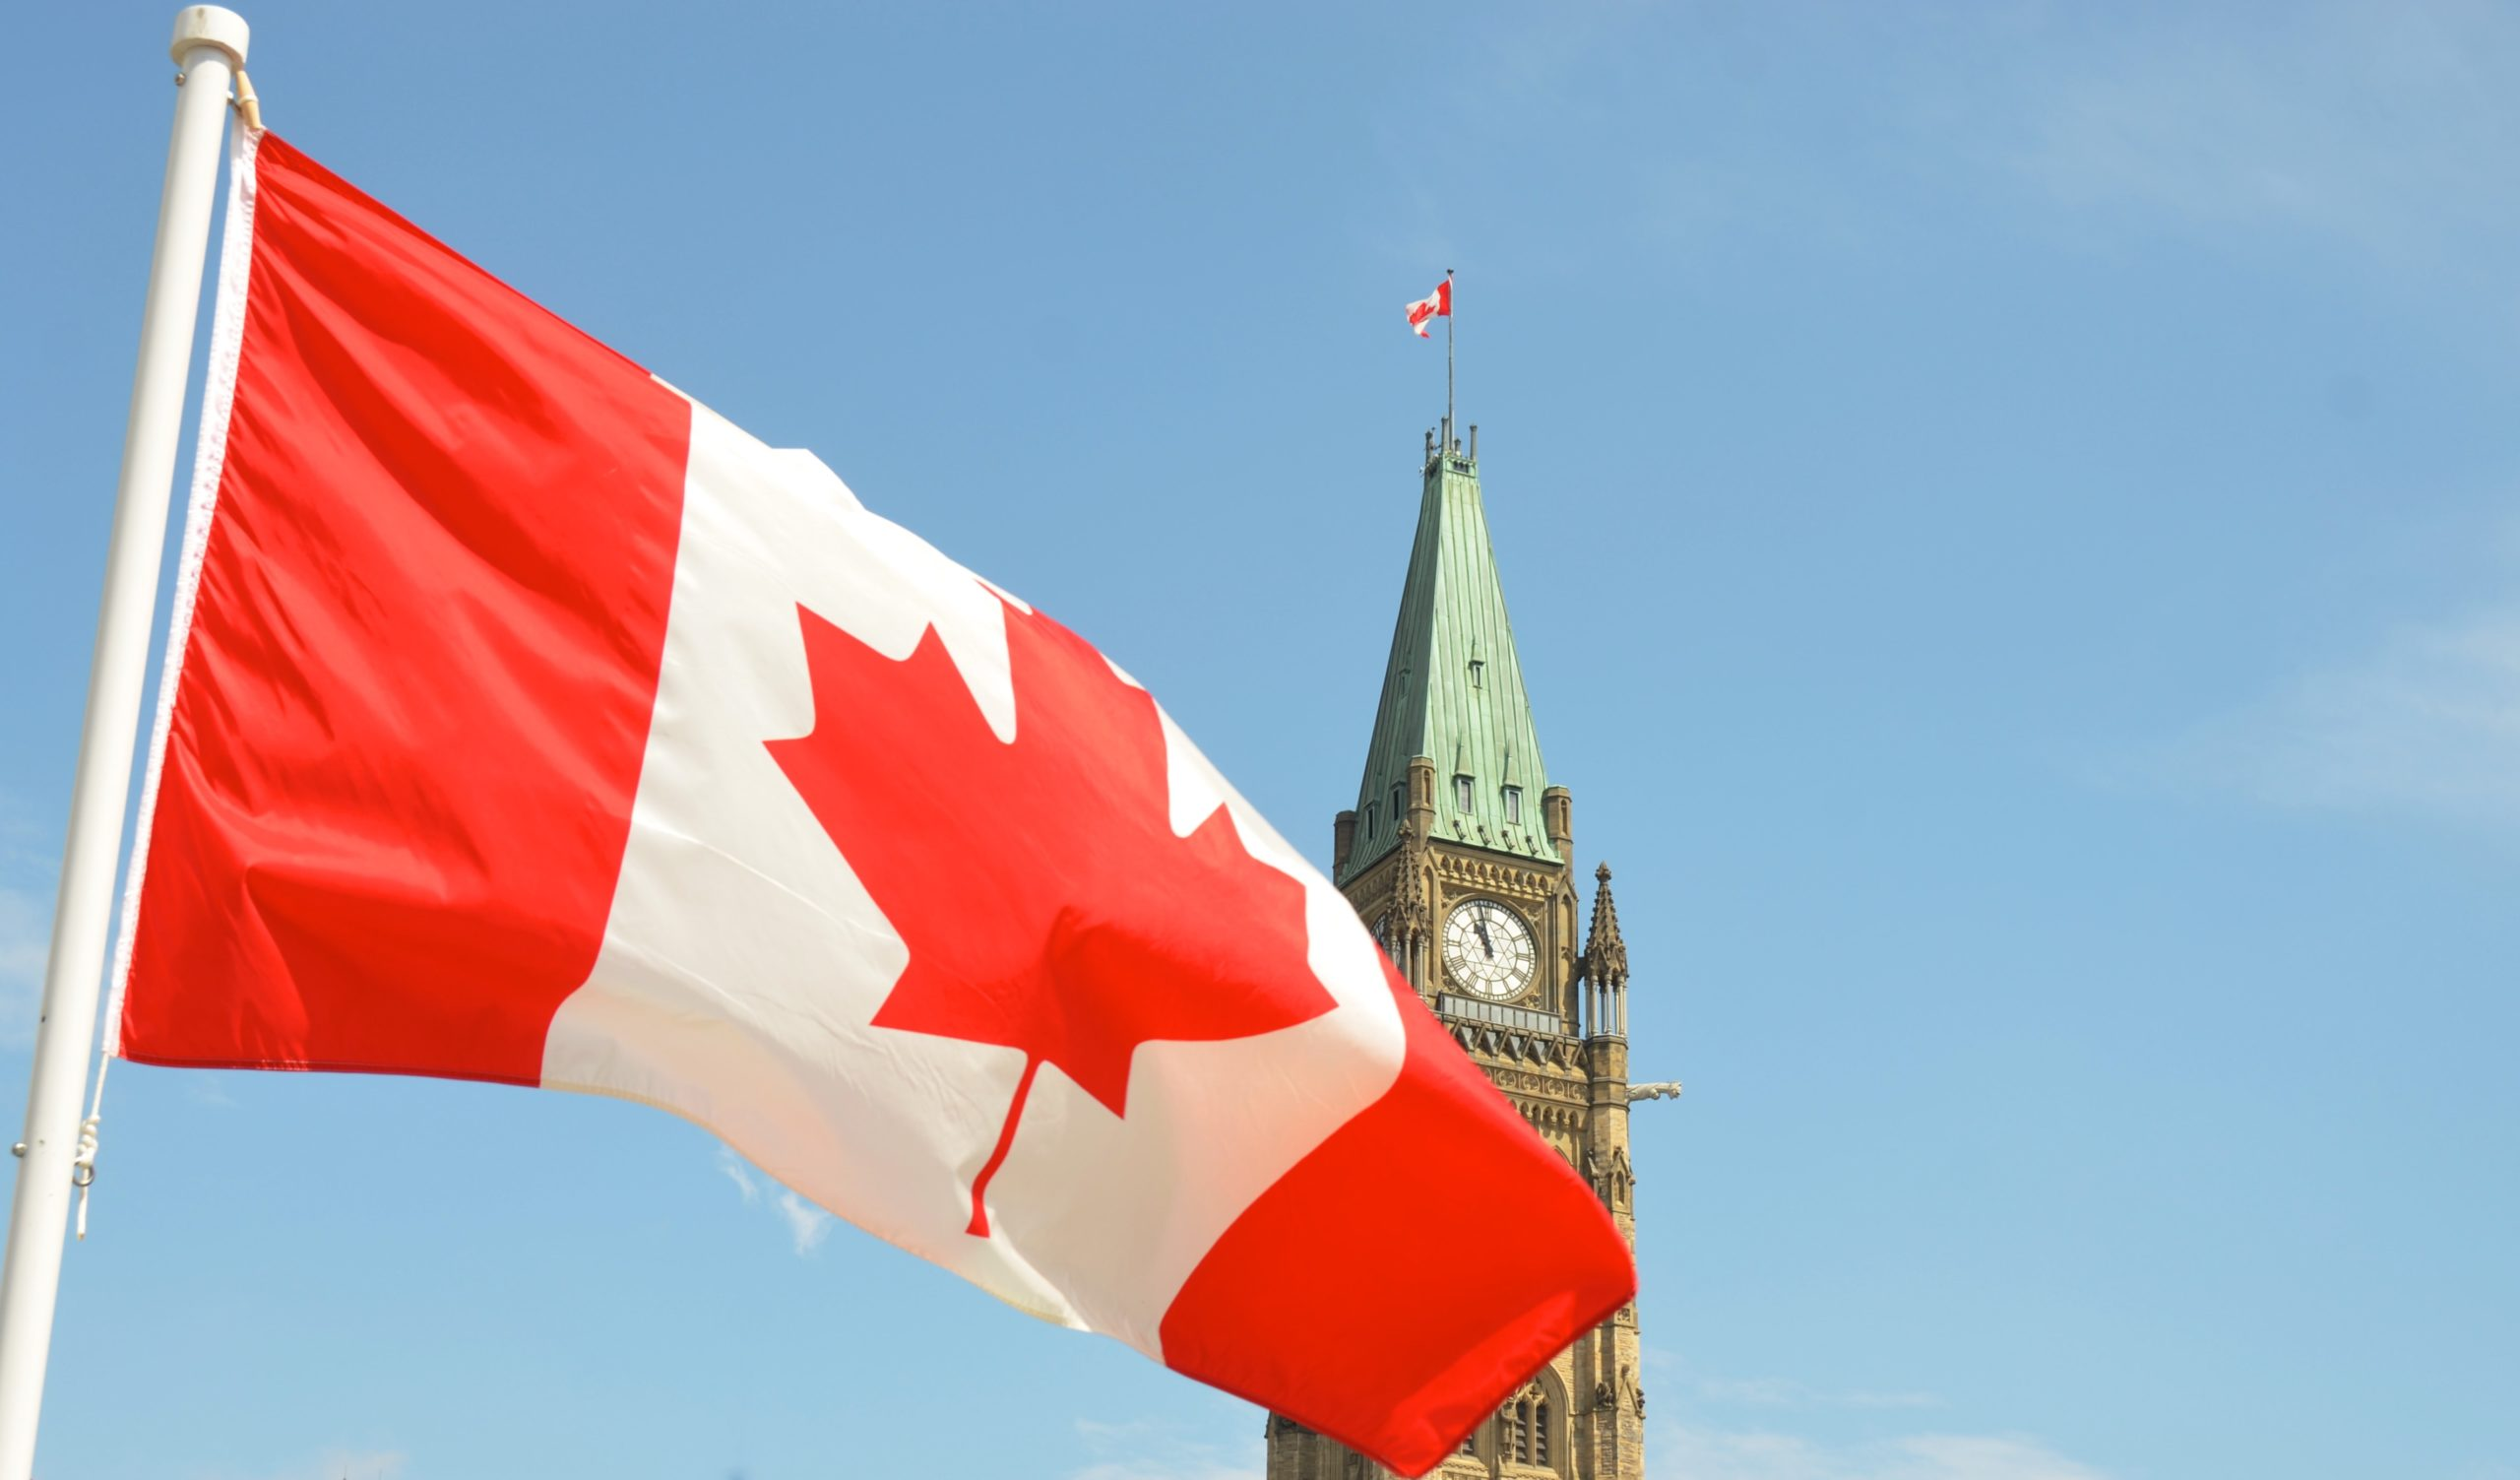 A Canadian flag outside of Parliament building.